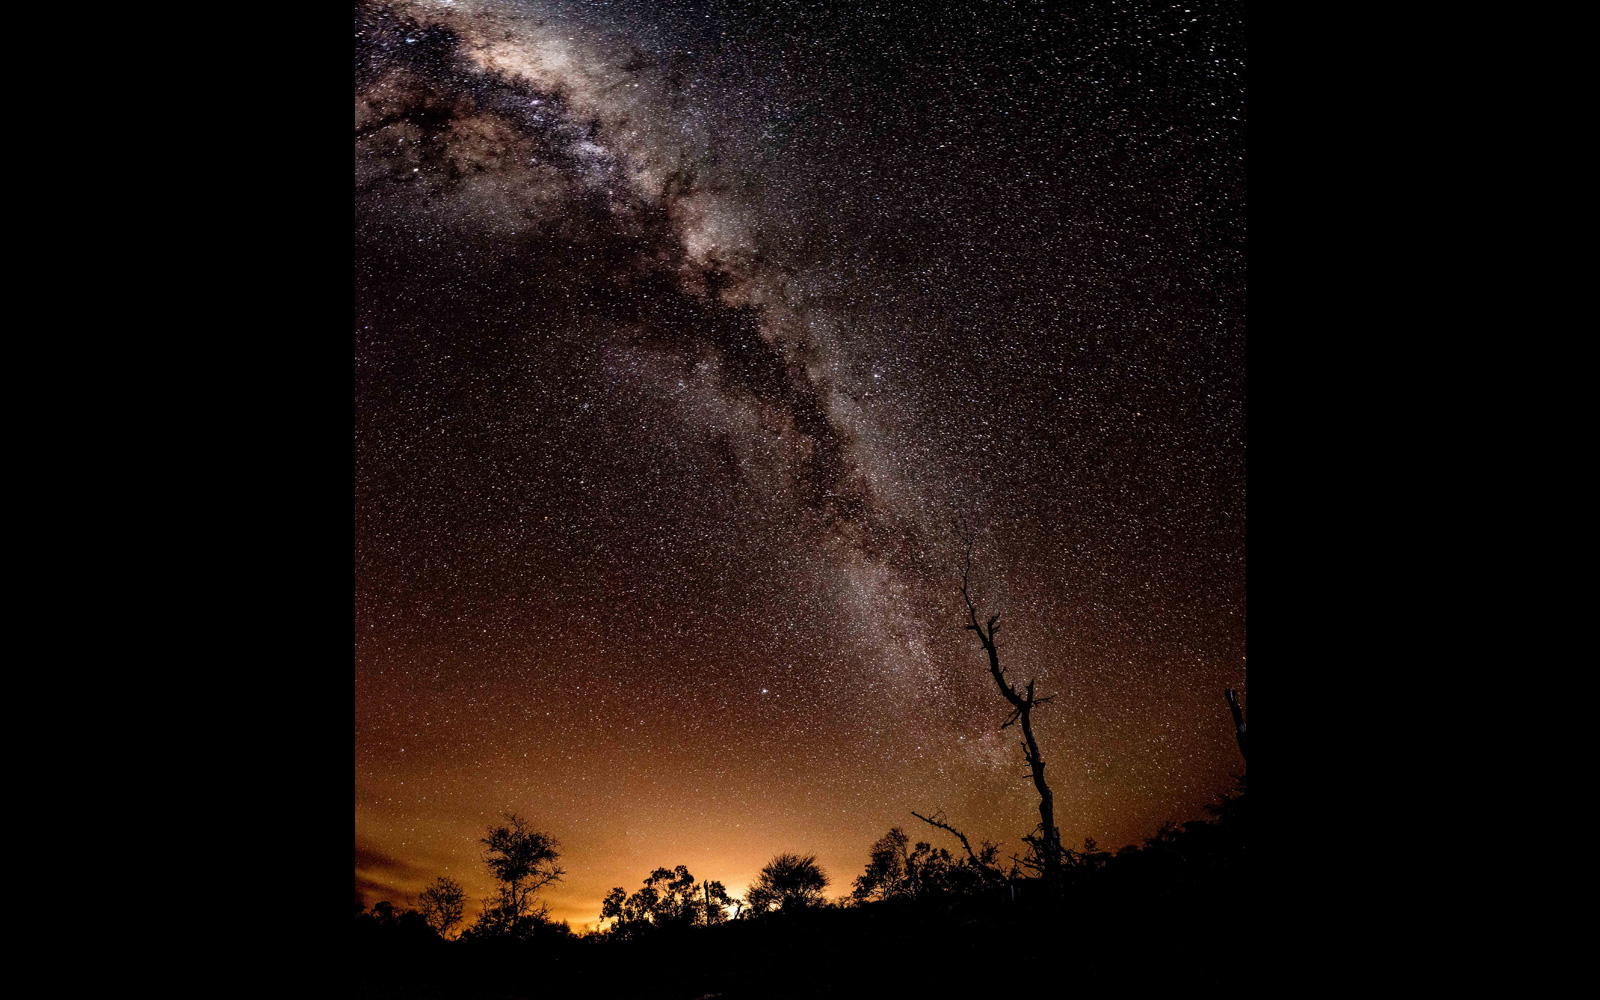 The Milky Way in Klaserie, Greater Kruger National Park, South Africa © Tim Feherty